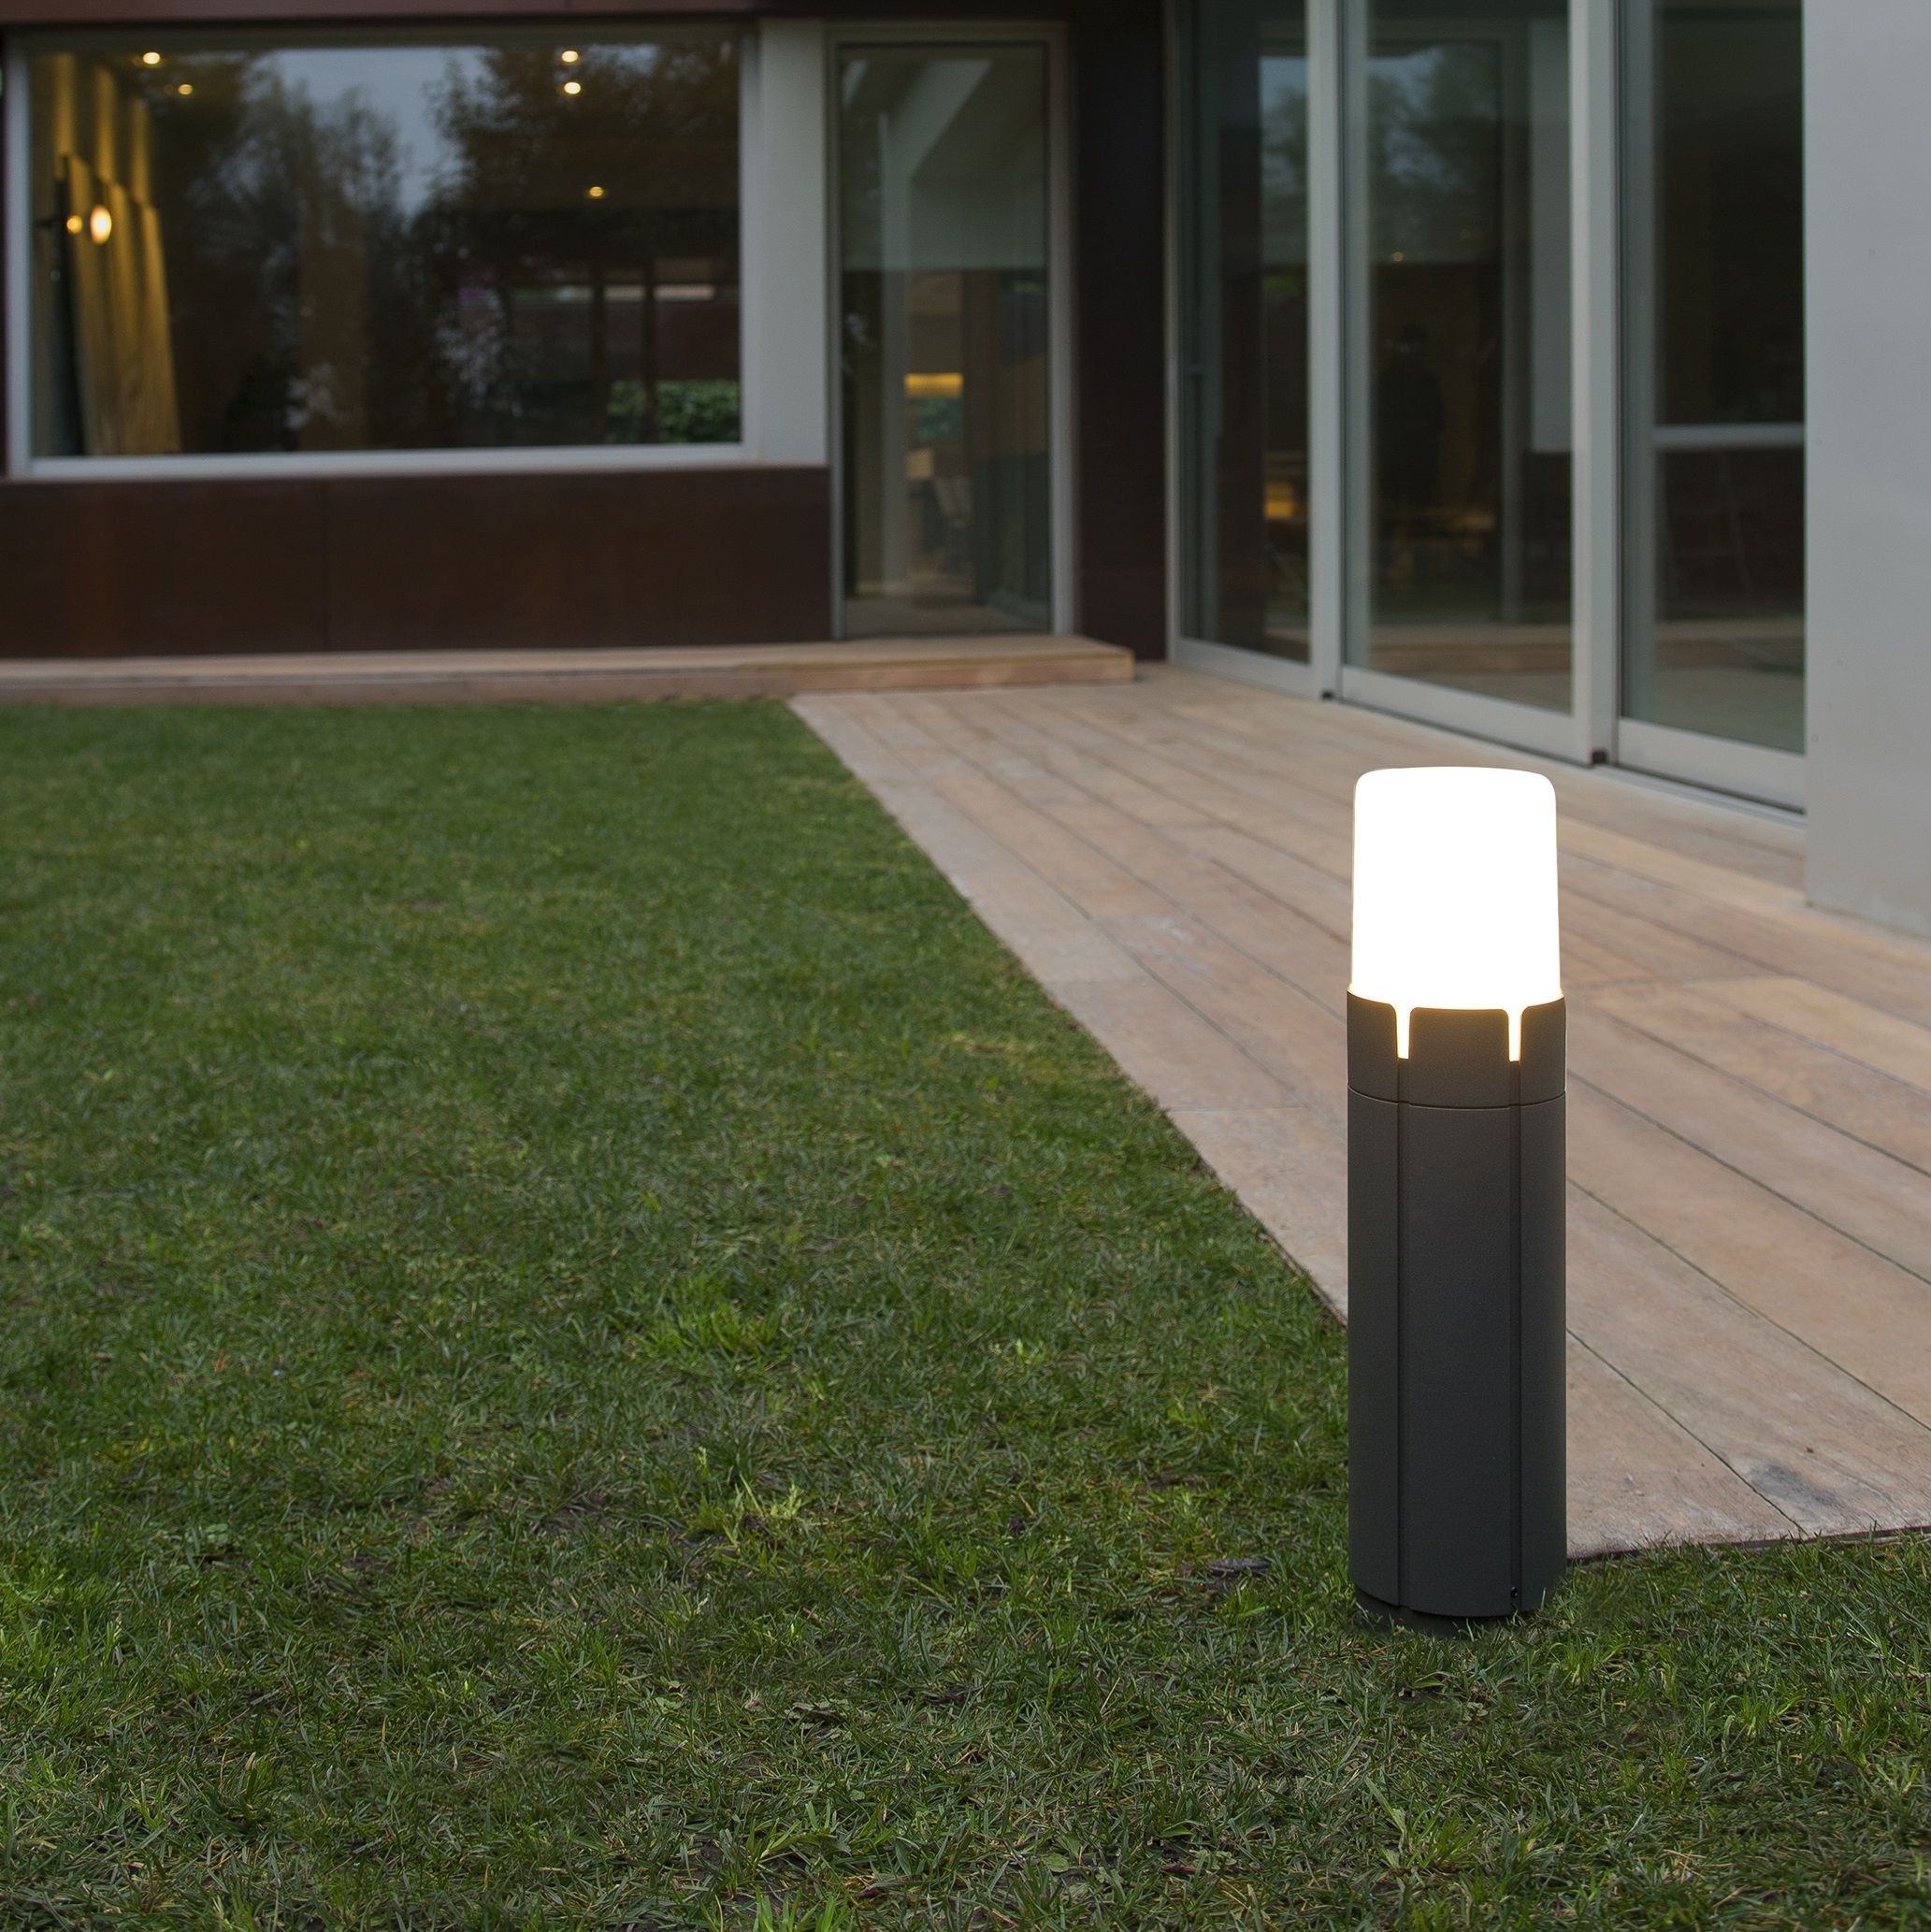 noir black borne baladeuse luminaire lighting lampe lamp jardin garden contemporain contemporary light lighting fonctionnel - Luminaire Jardin